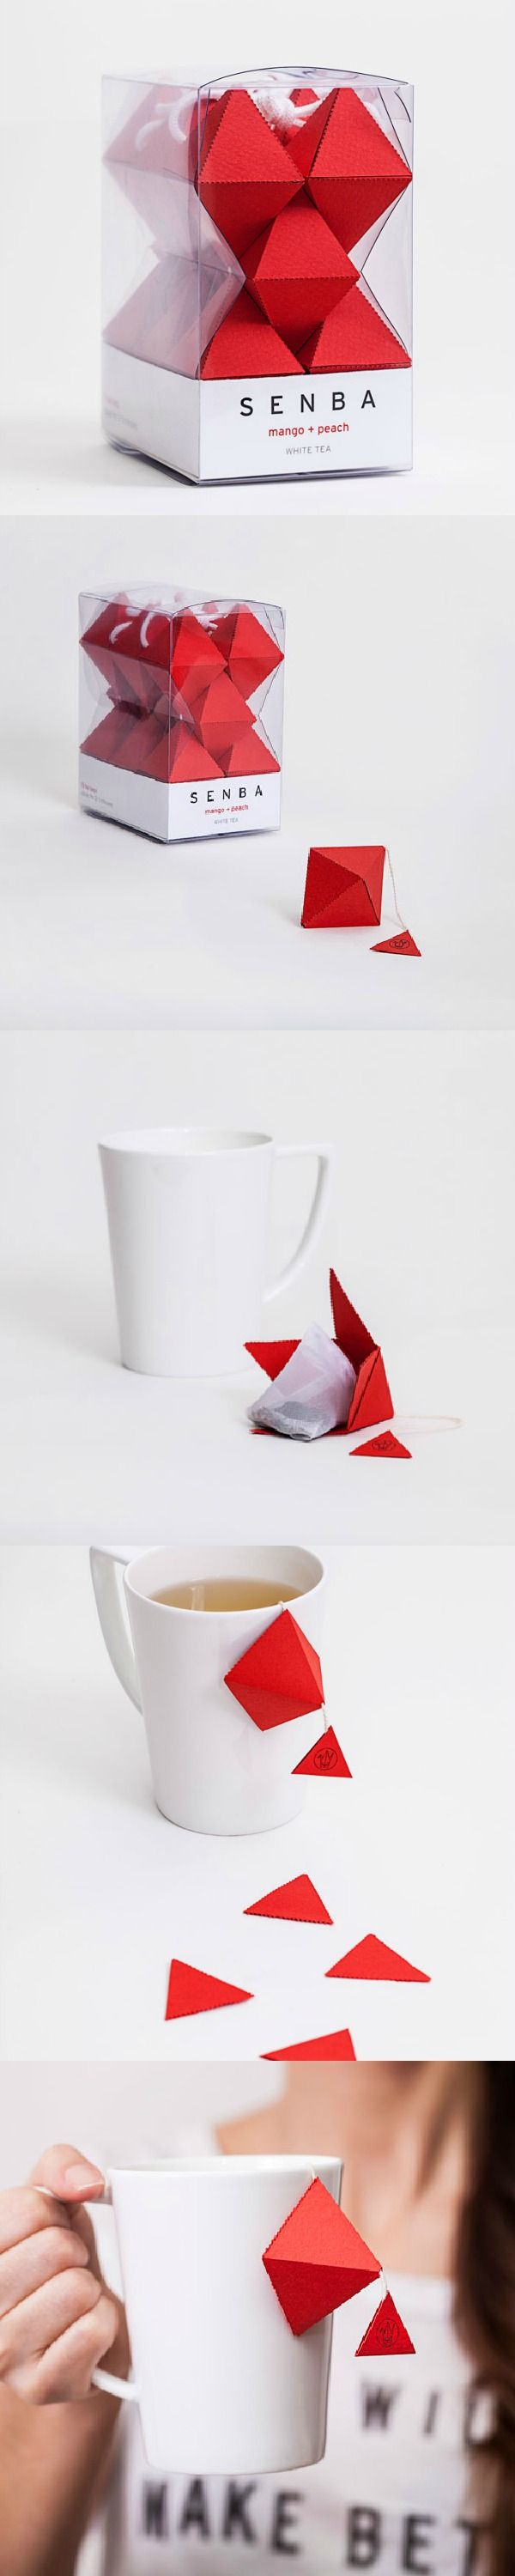 Senba tea design by Seita Goto. The #PPOTD team loves great #tea #packaging #2013 #toppin PD